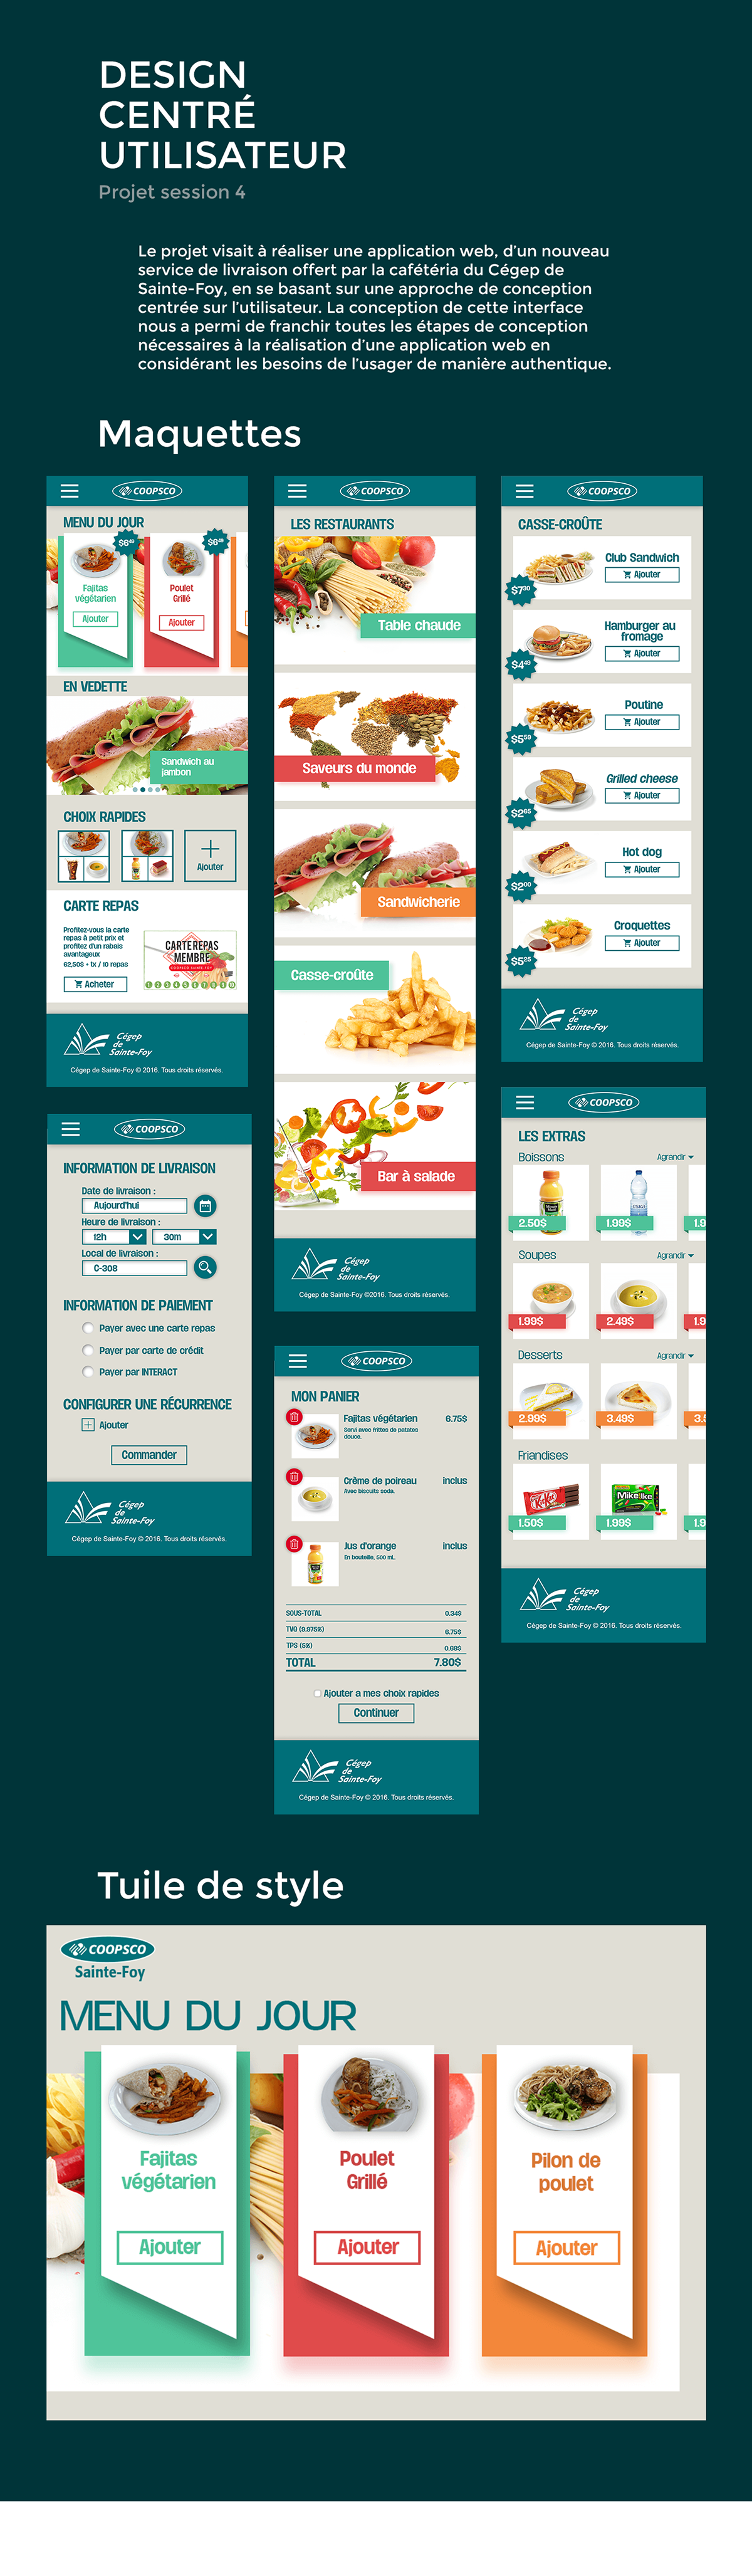 Interface Web design reponsive mobile COOPSCO Alimentation Shopping